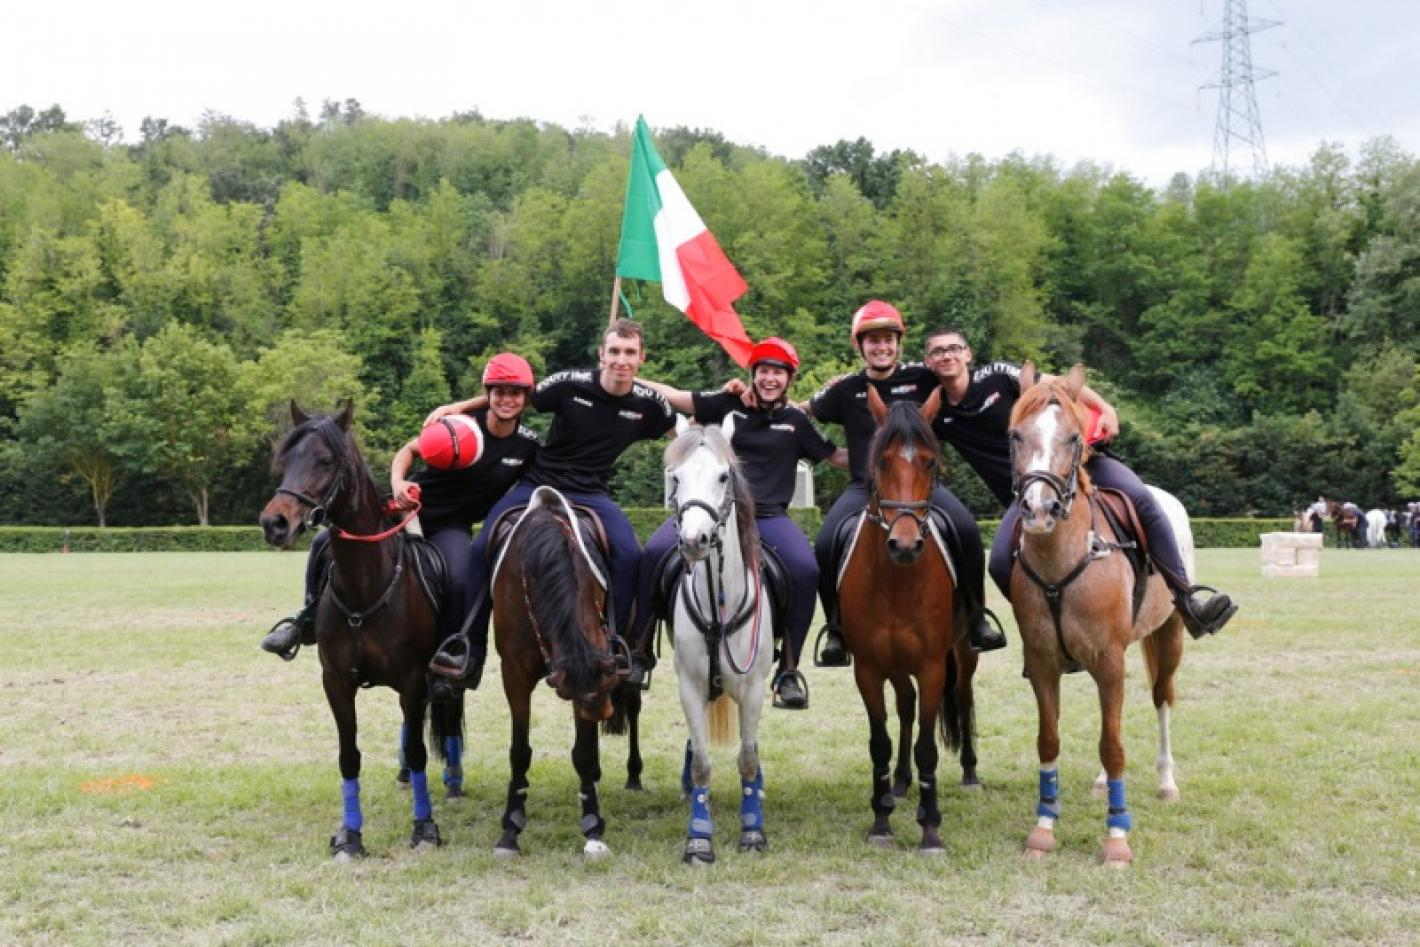 images/lombardia/News/Endurance/medium/medium/Squadra_OPEN.jpg